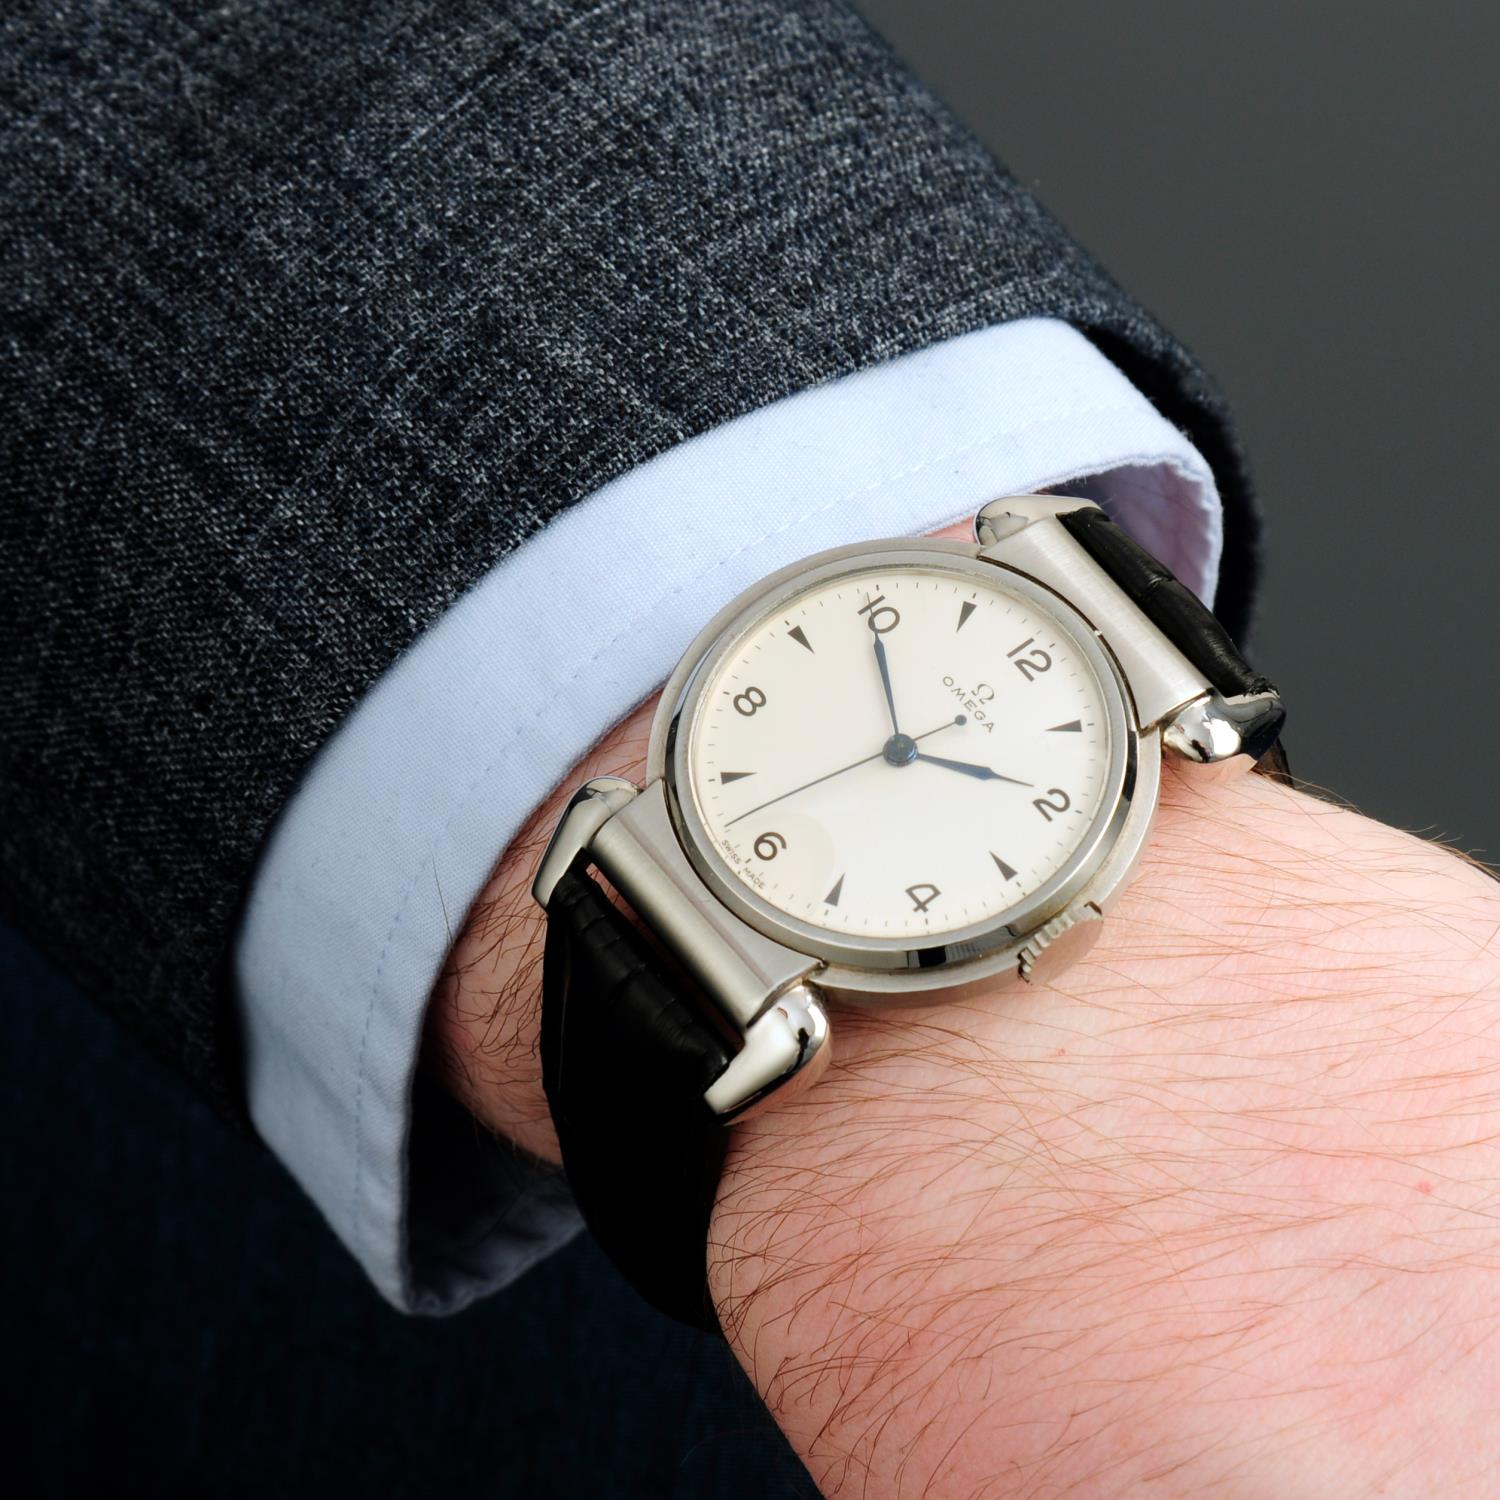 OMEGA - a Scarab wrist watch. - Image 3 of 5